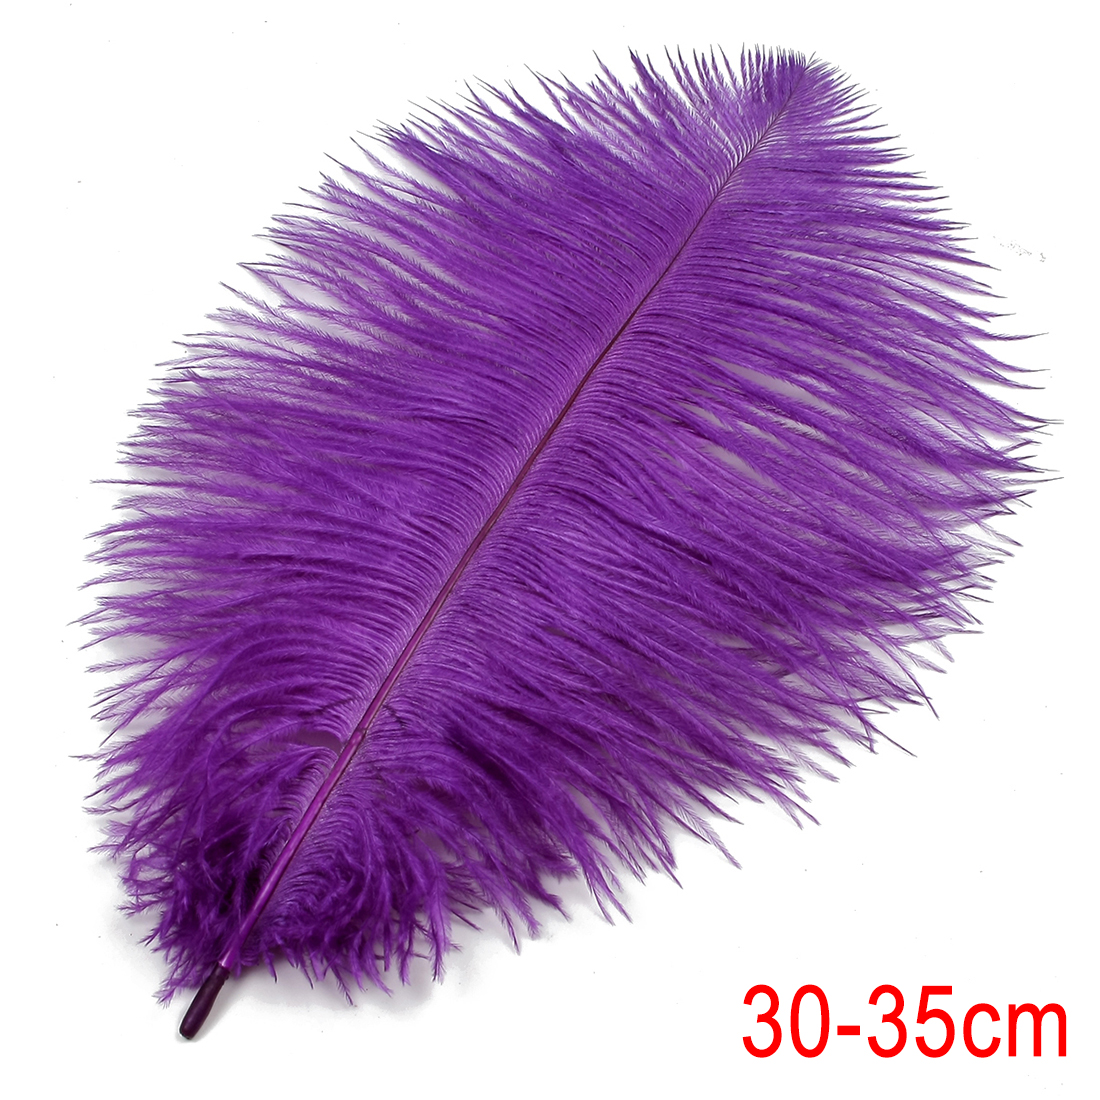 12-14inch / 30-35cm Ostrich Feather for Wedding Party Decoration Purple